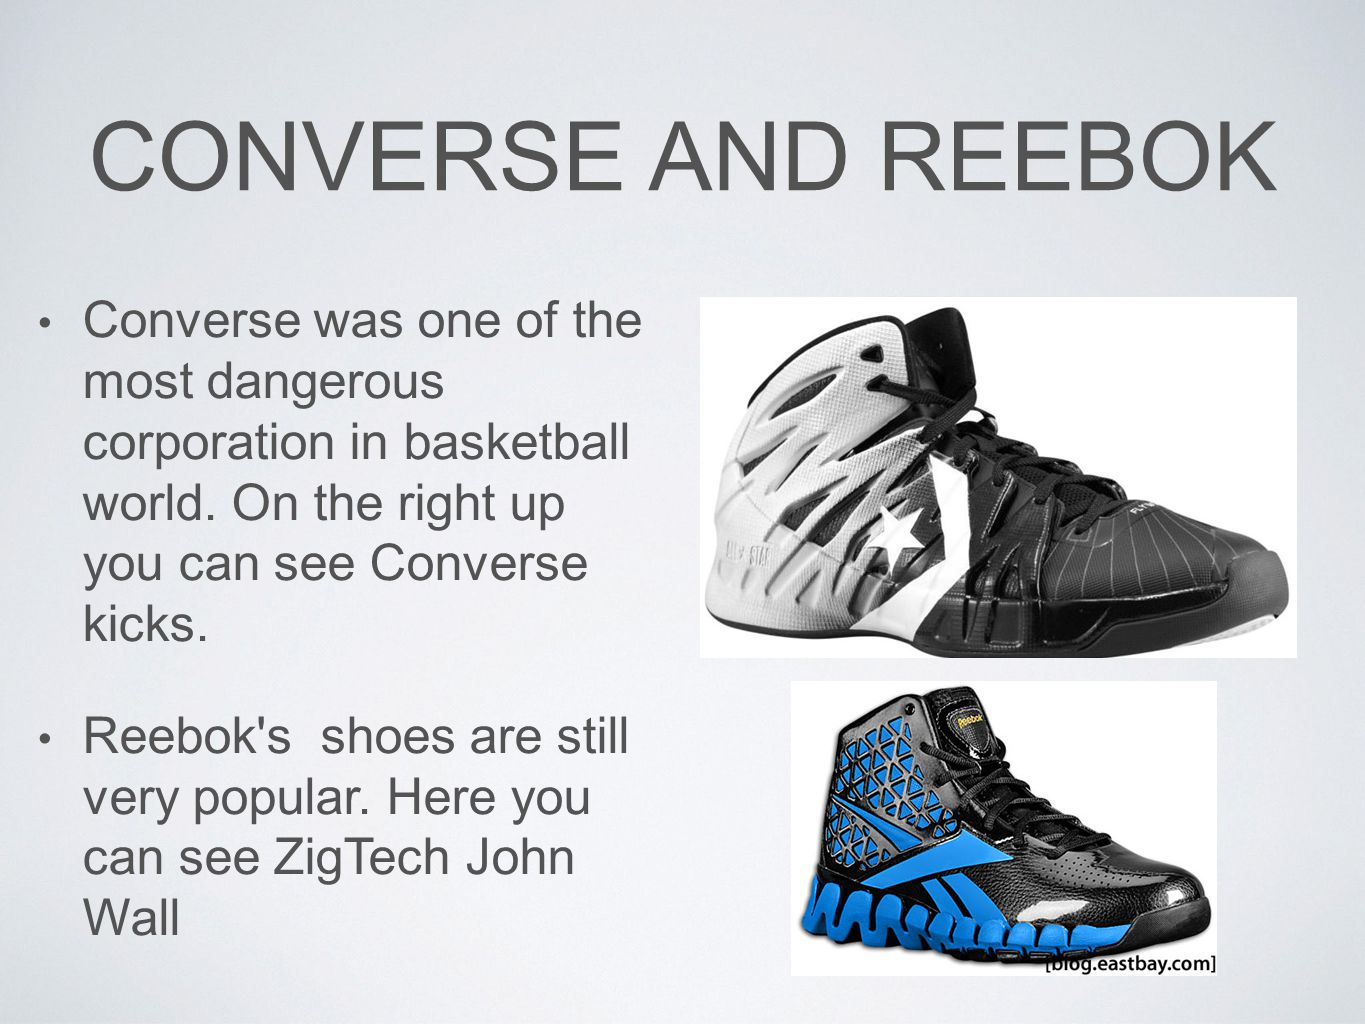 CONVERSE AND REEBOK Converse was one of the most dangerous corporation in basketball world.